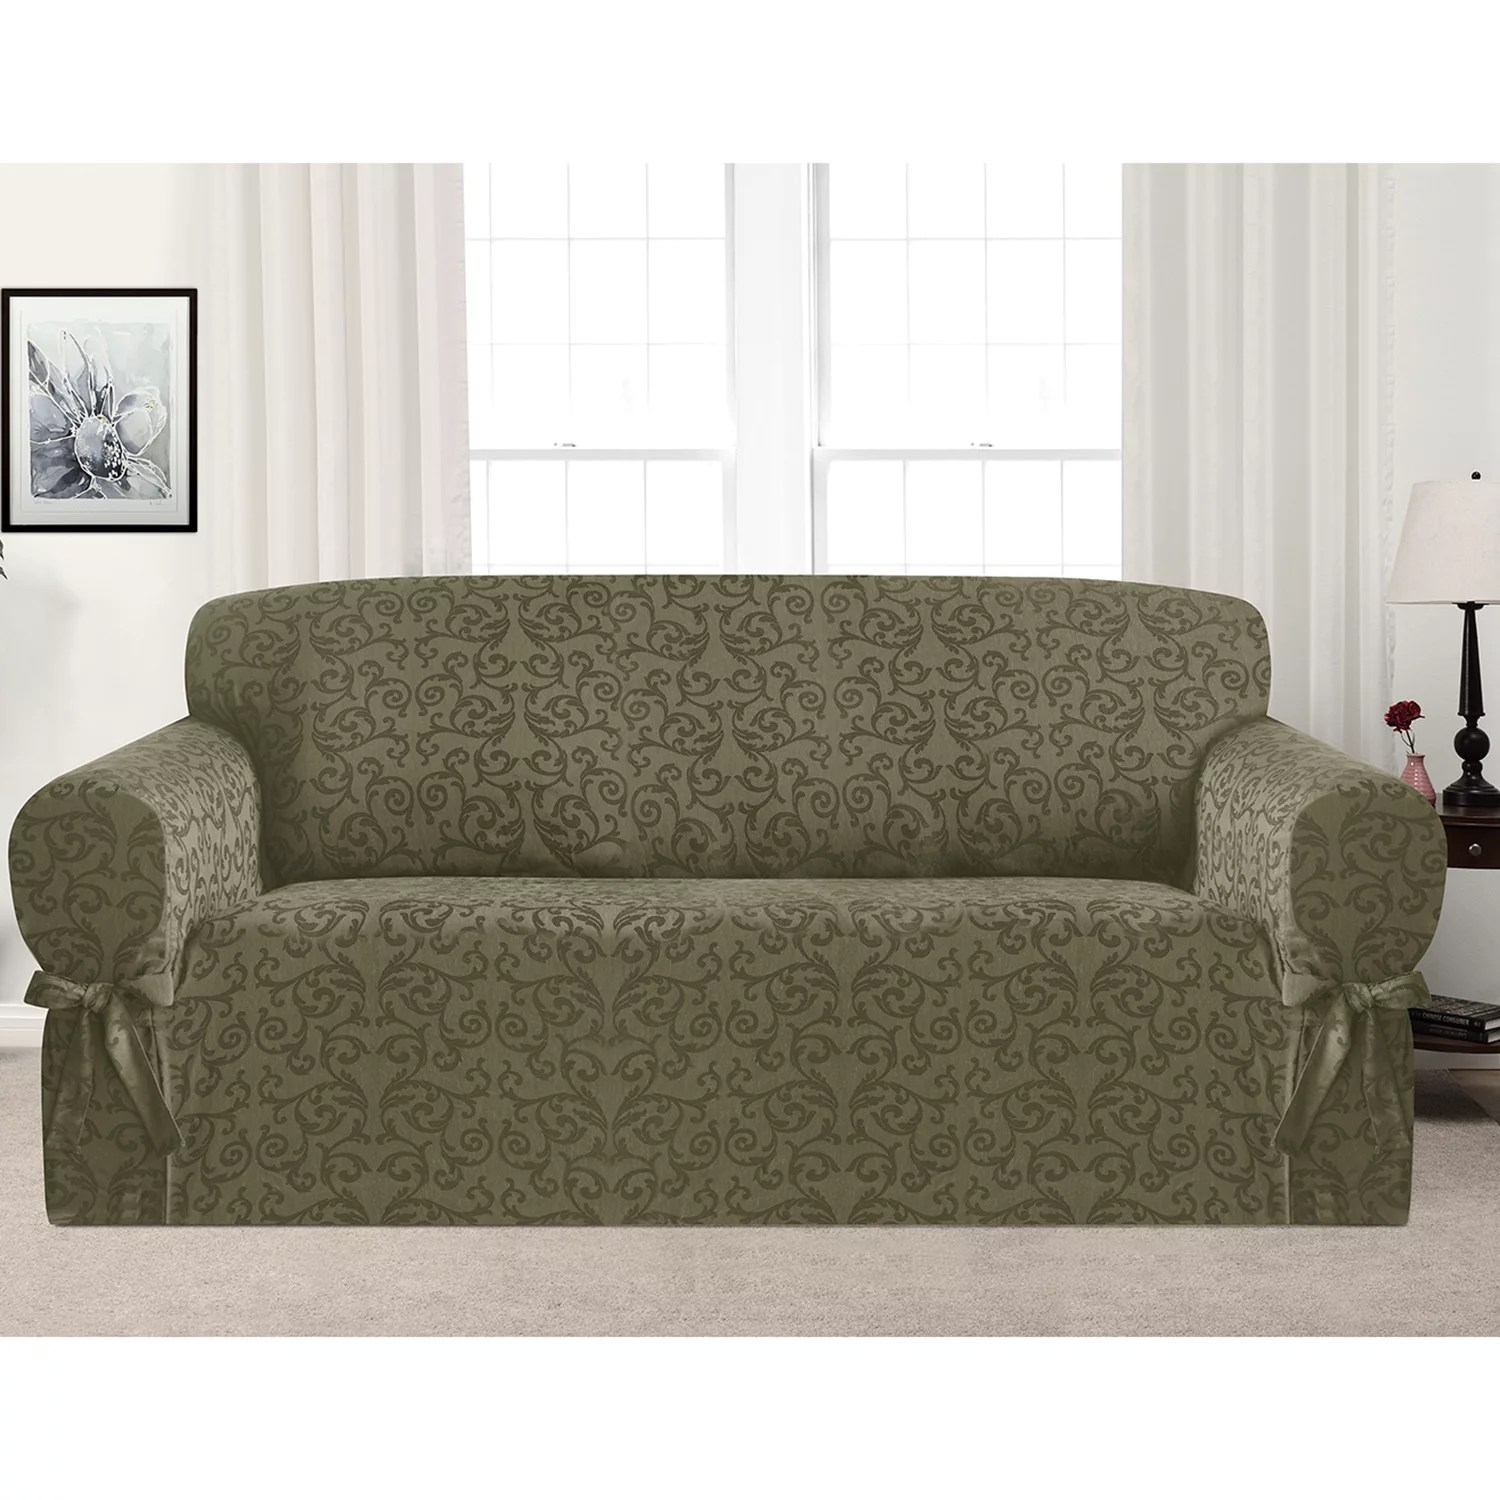 armless sectional sofa pet protector dfs large corner bed slipcovers kohl s kathy ireland americana slipcover